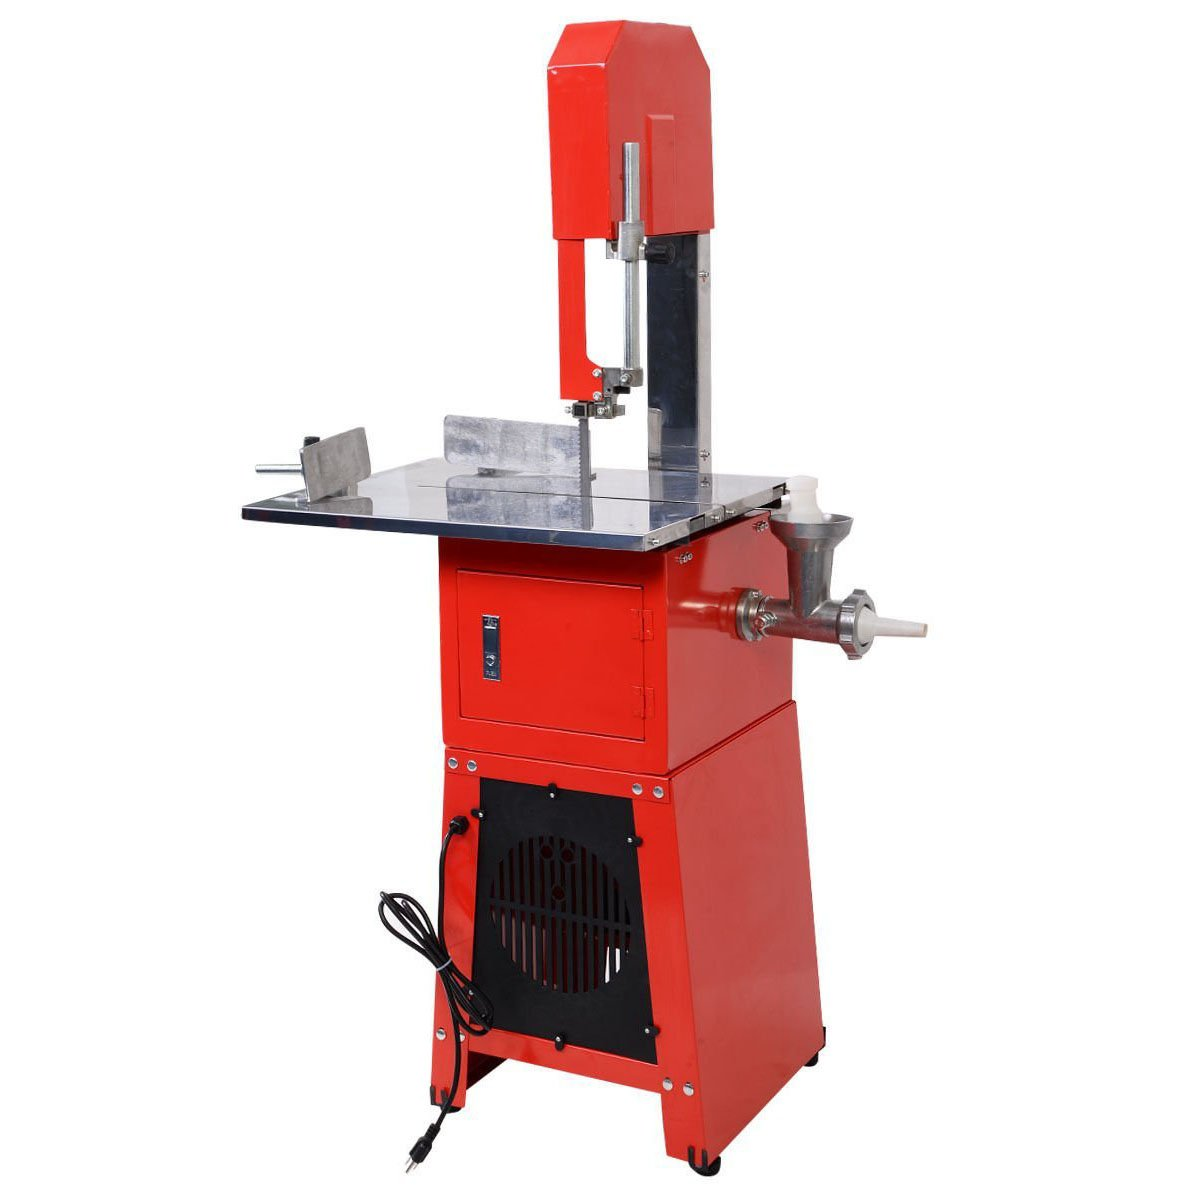 Tangkula Electric 550W Proffessional Stand Up Butcher Meat Band Saw & Grinder Processor Sausage (Red) by Tangkula